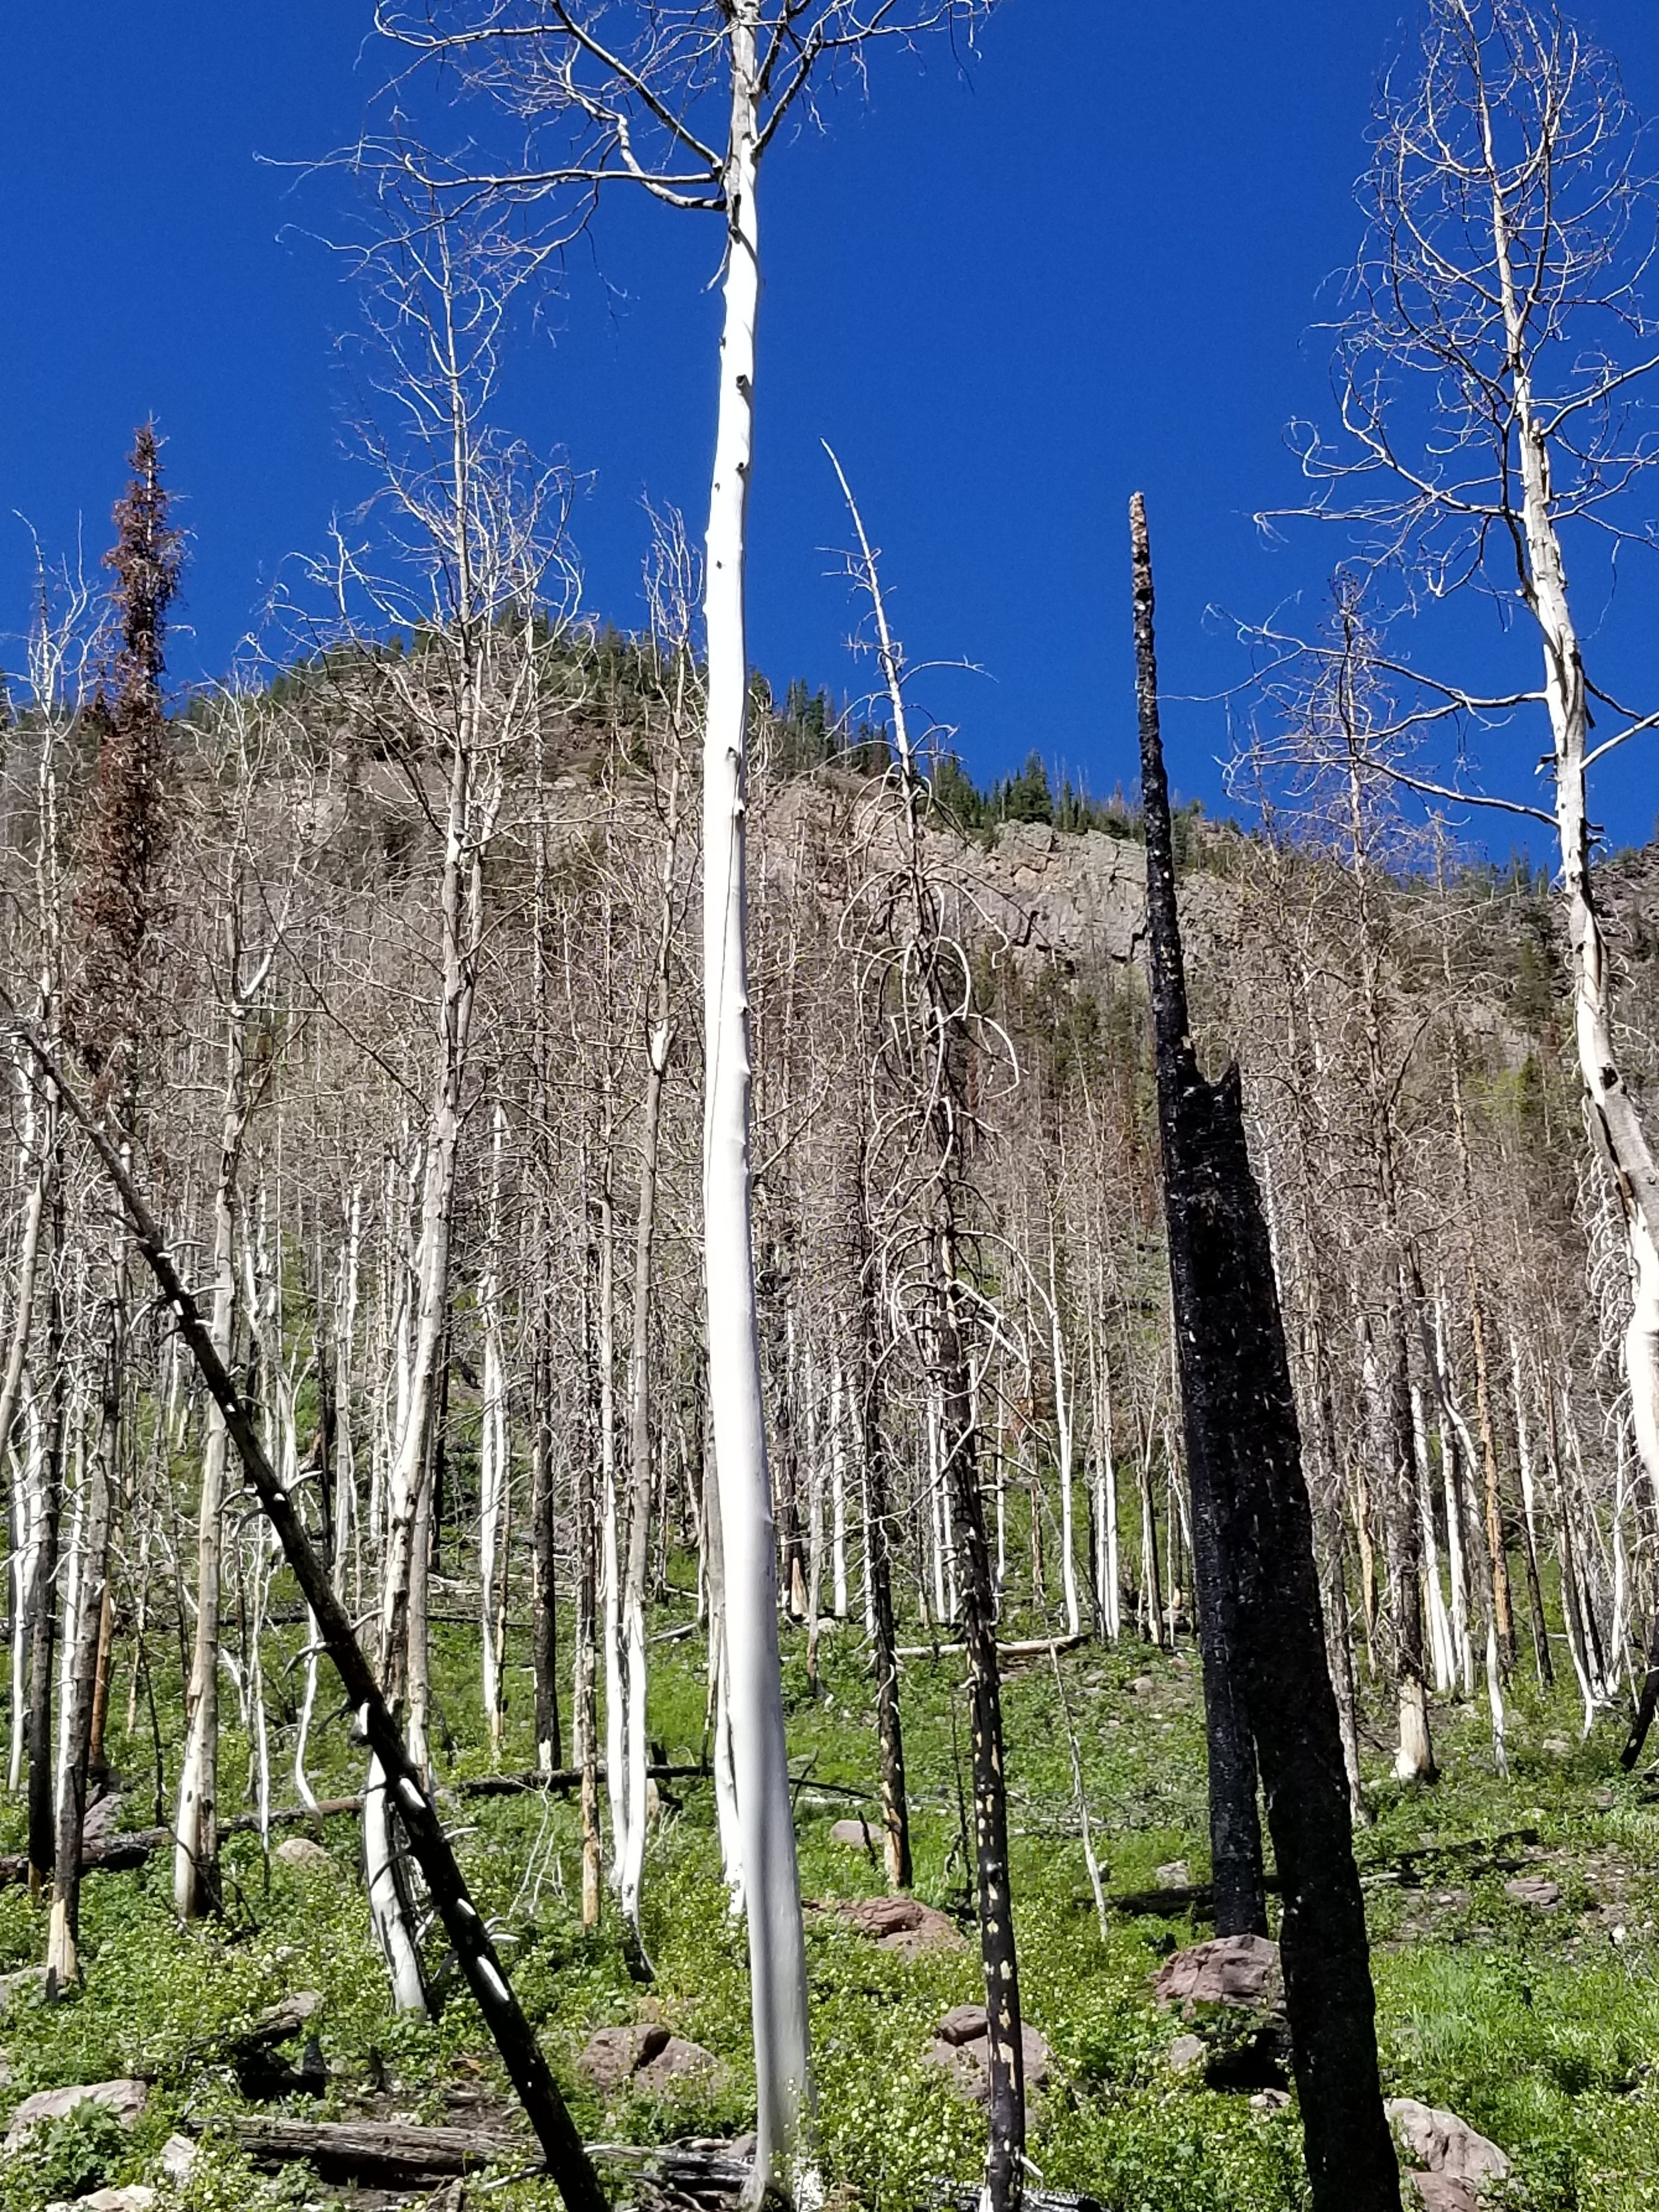 We hiked through a burned area yesterday. There were wildflowers everywhere, but what really stood out to me were these beautiful pure white aspen trees, that had the outer layer of bark burned off.